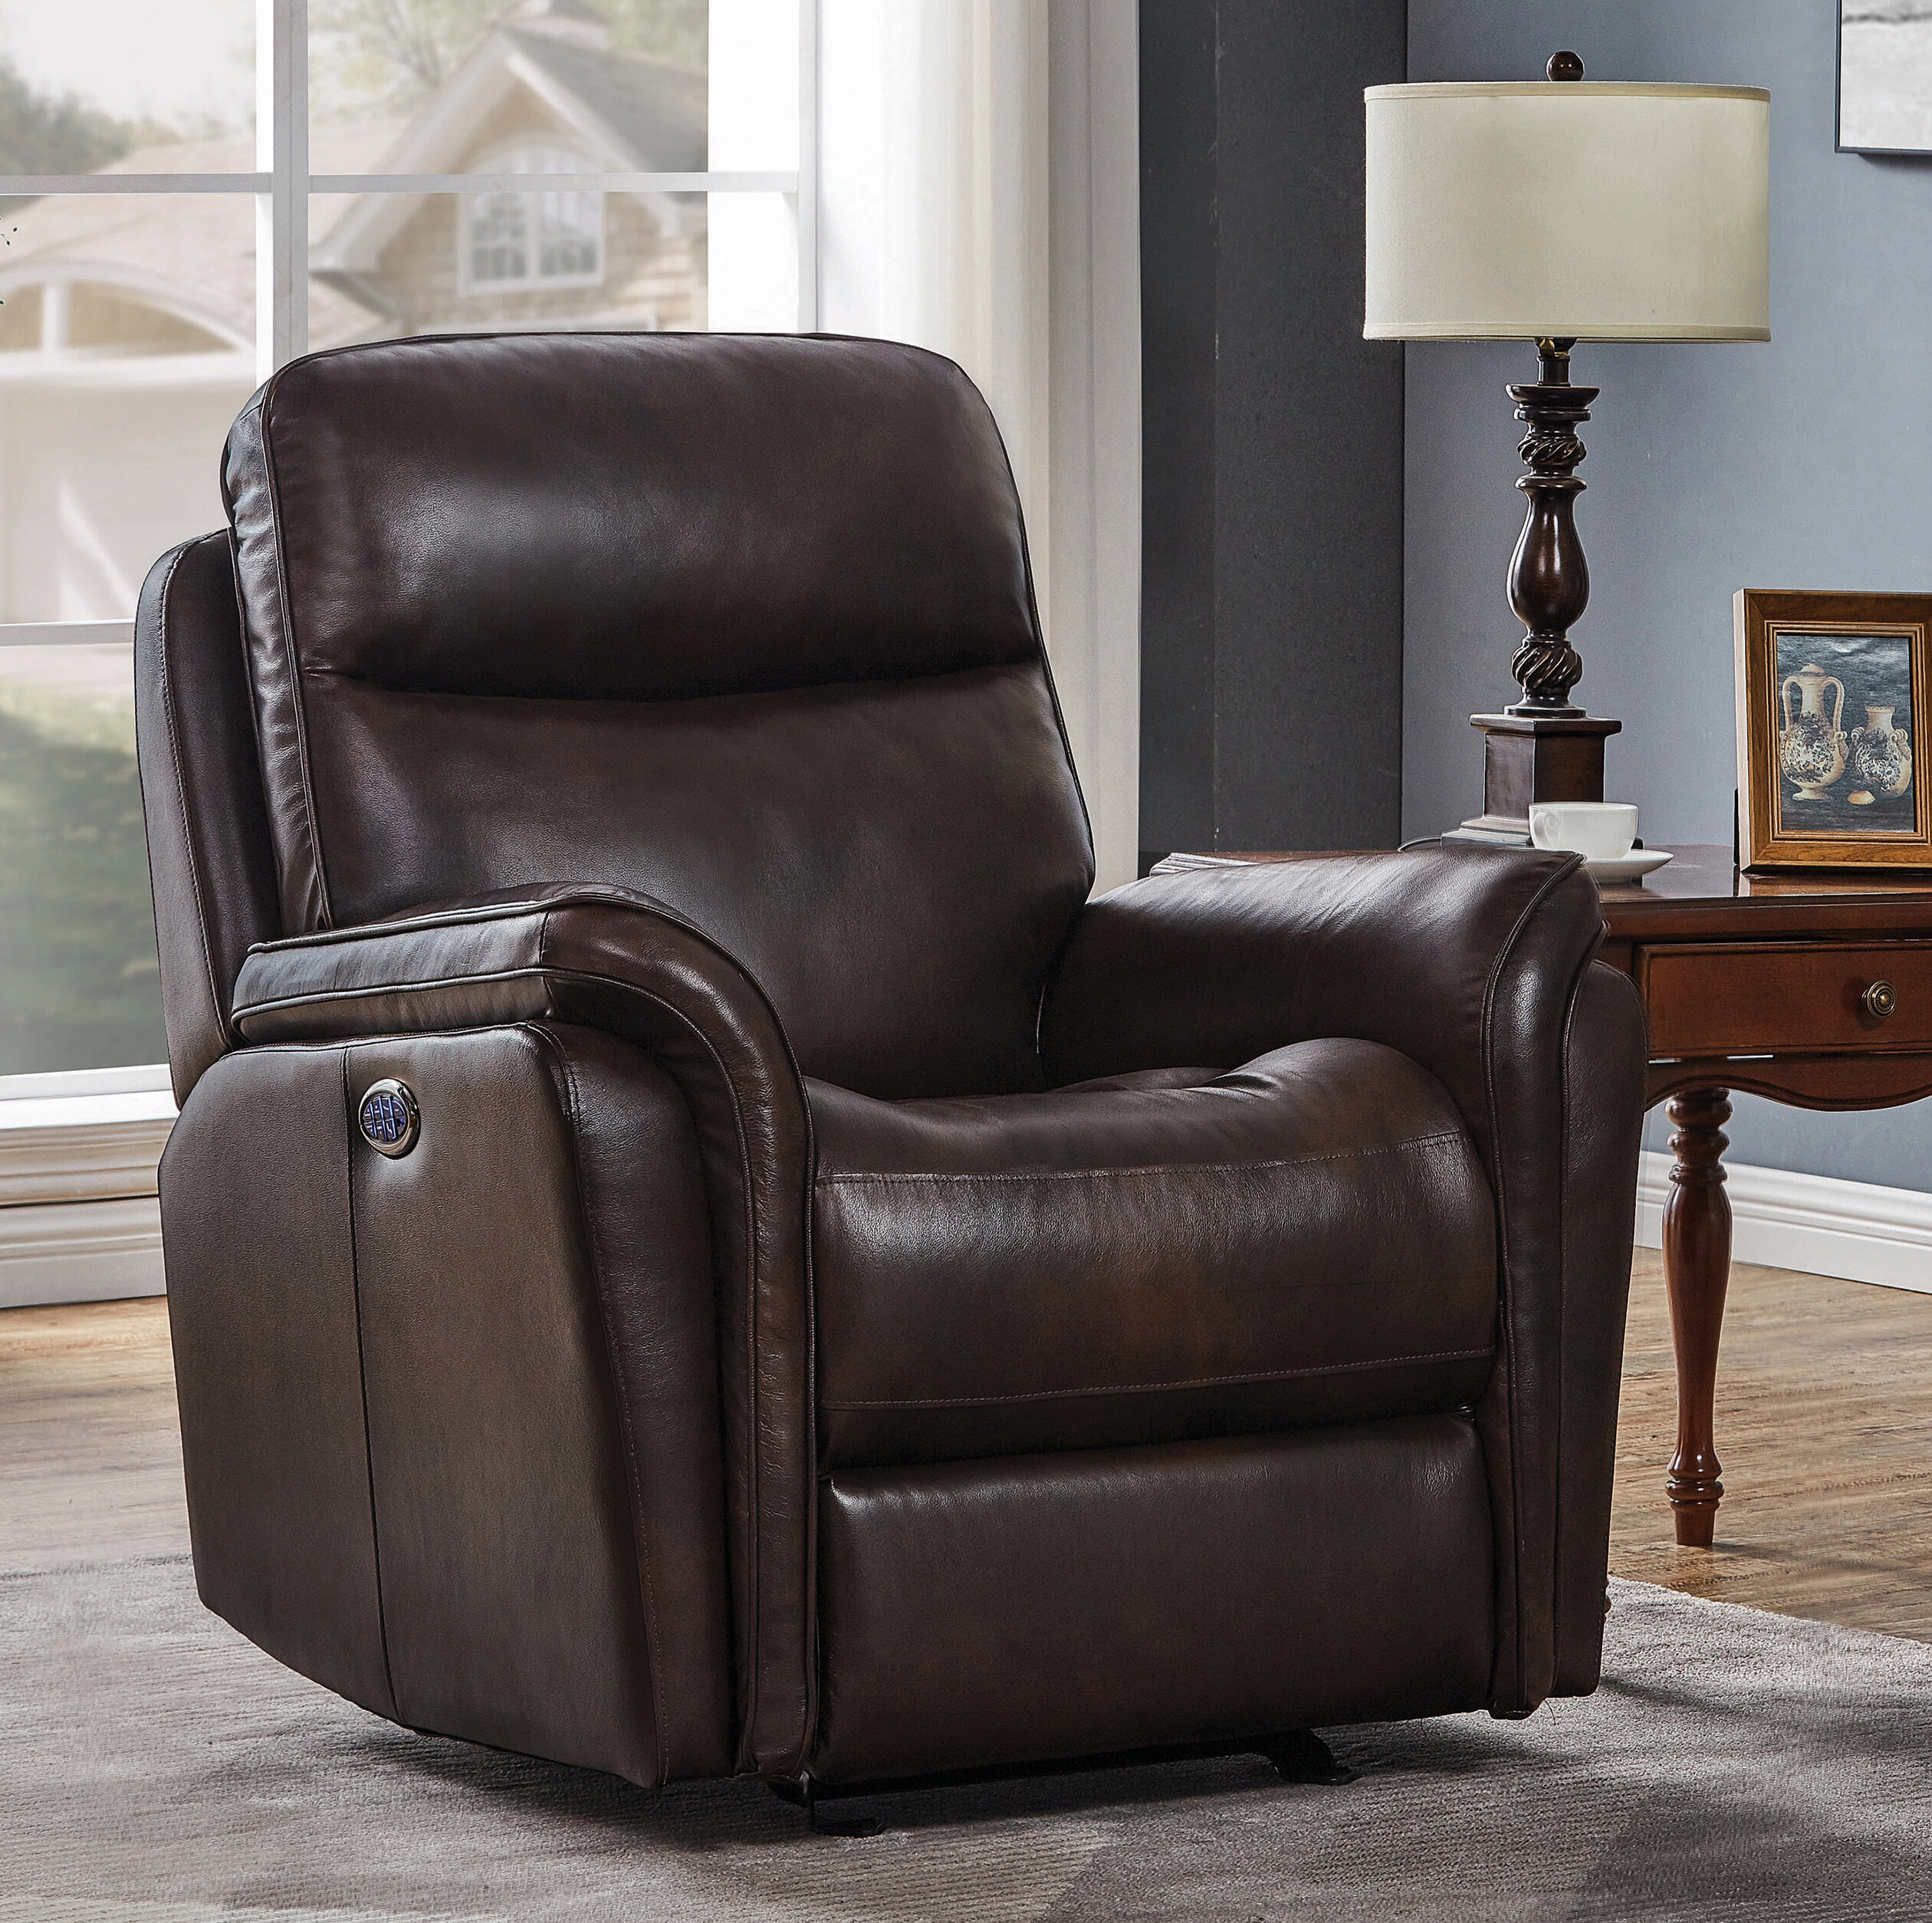 Leather Tufted Recliners You Ll Love In 2021 Wayfair